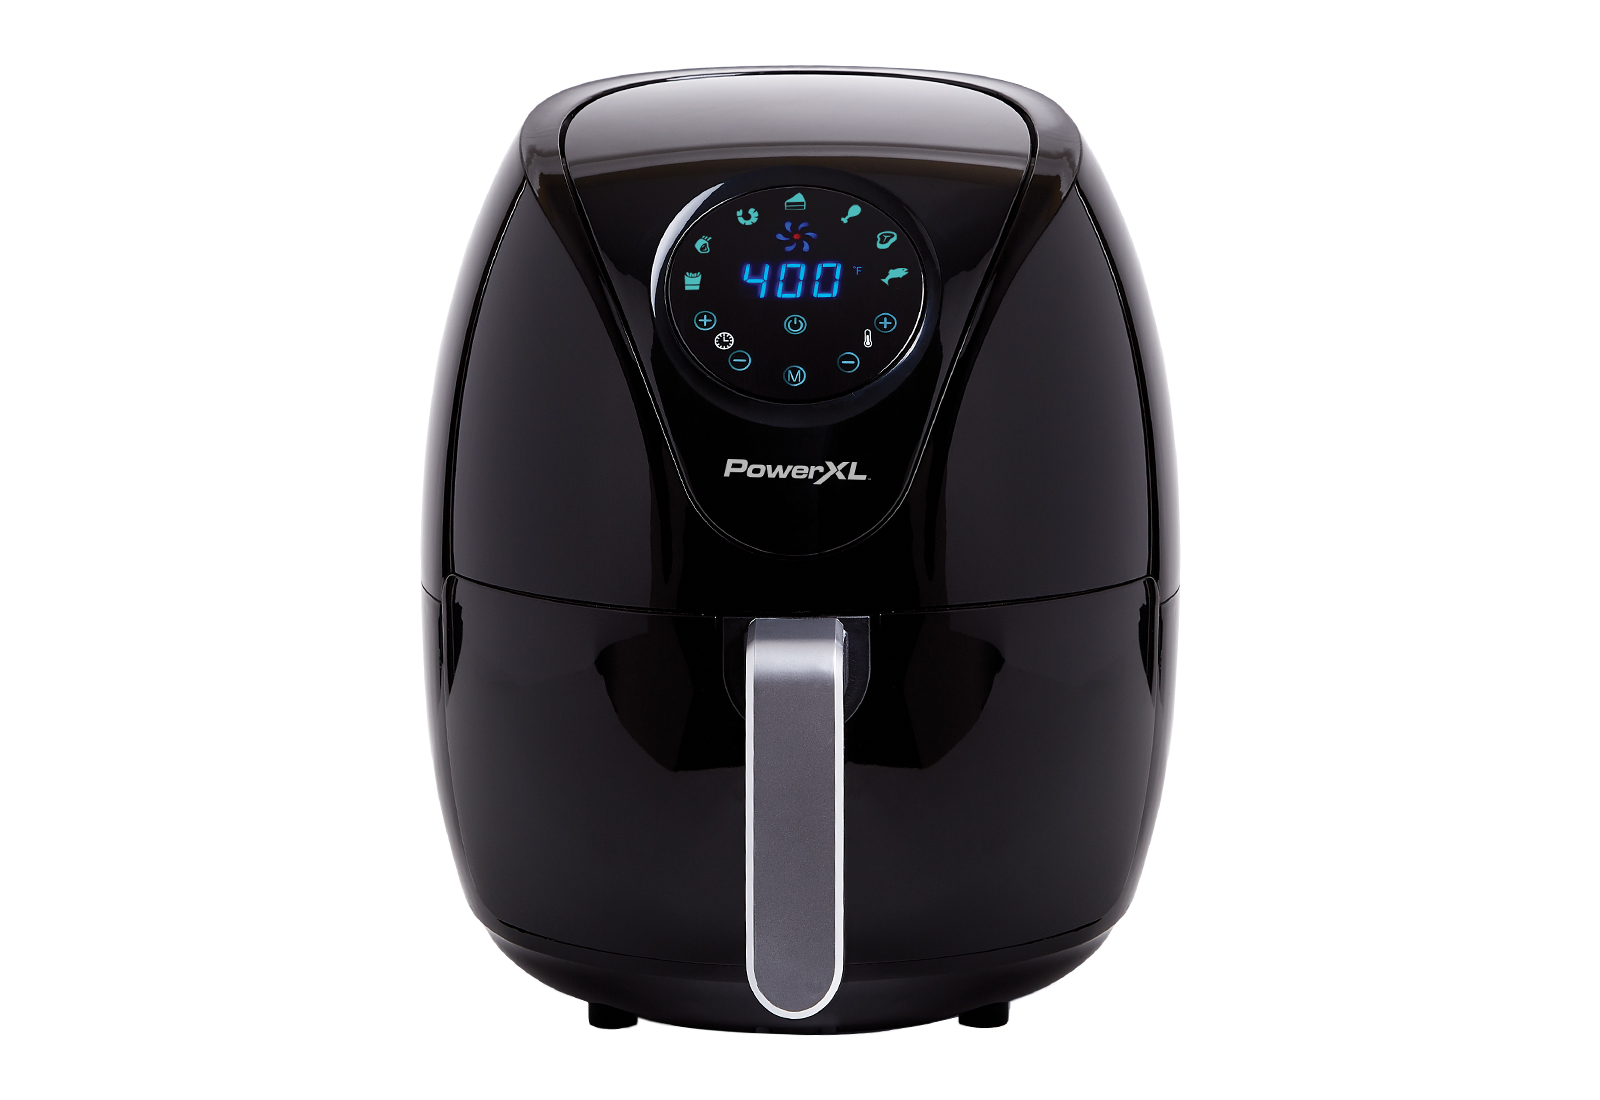 PowerXL Air Fryer Product Image